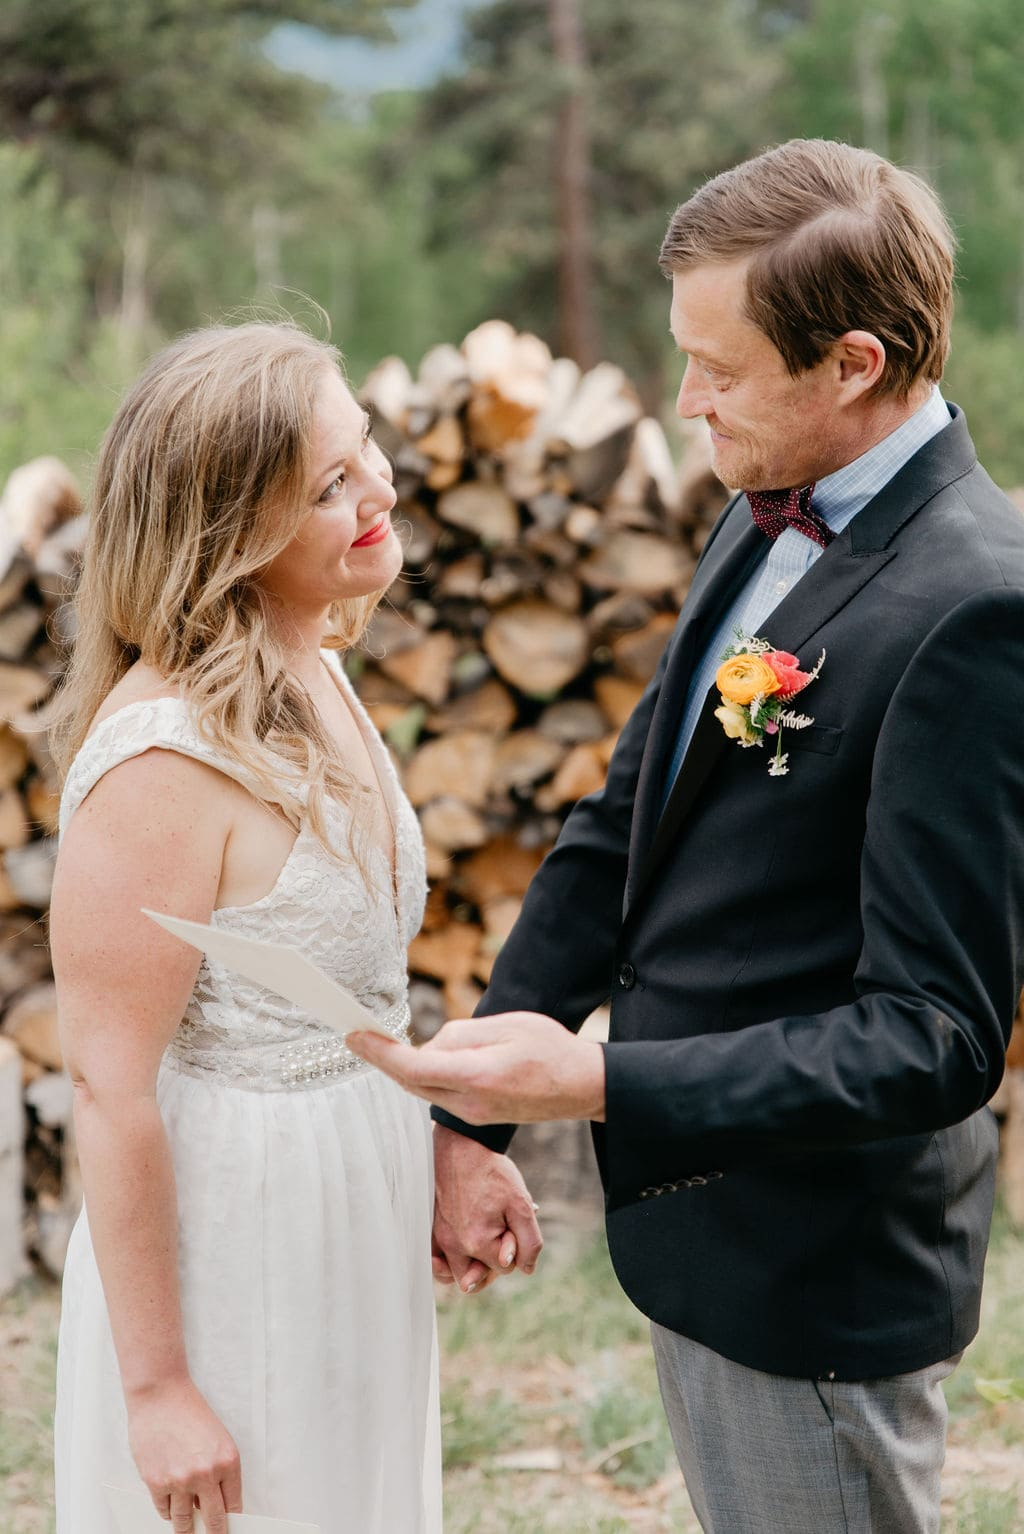 Colorado Elopement in Golden, Colorado saying their vows